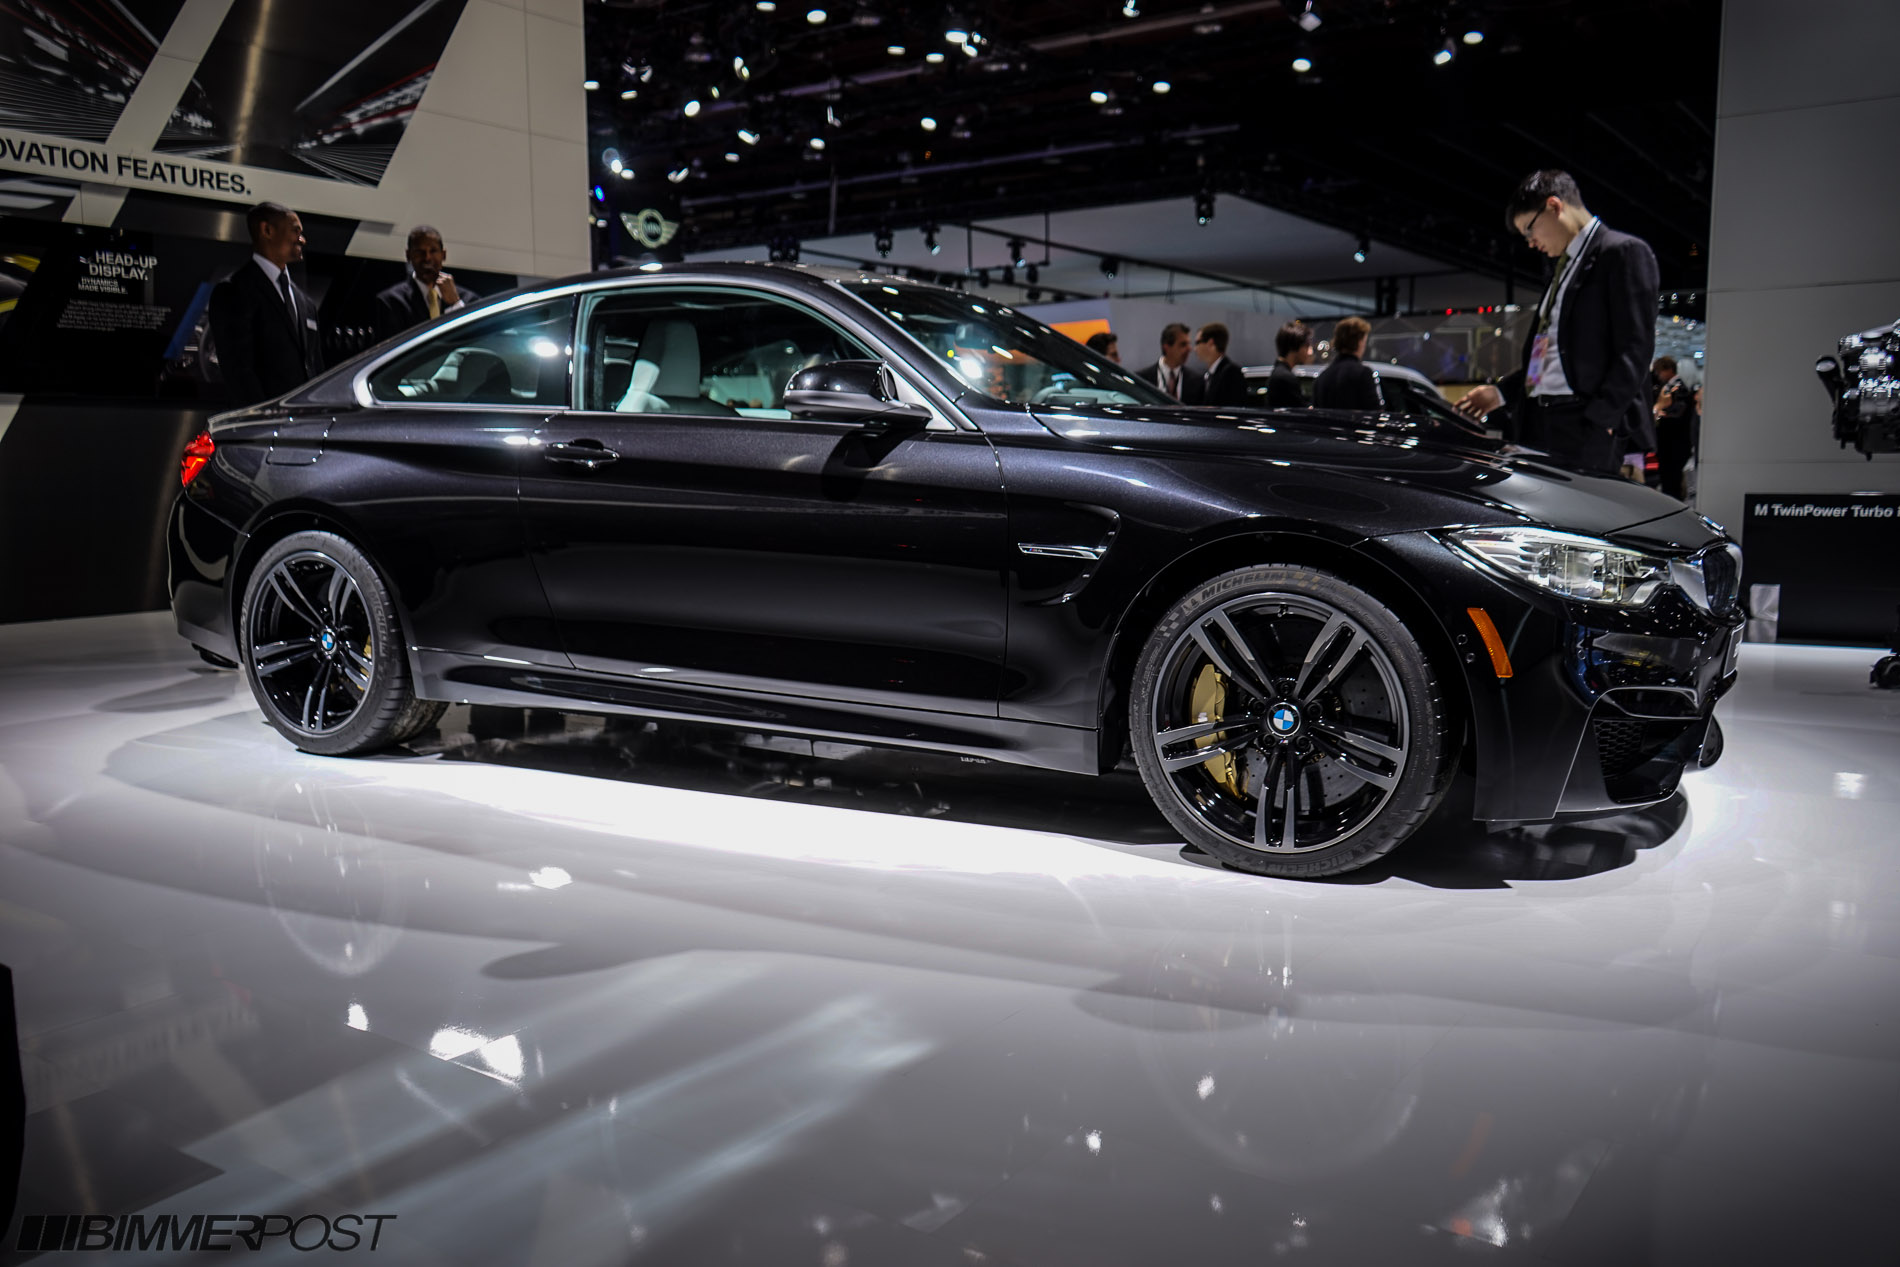 Bmw M4 In Black Sapphire From The Detroit Auto Show